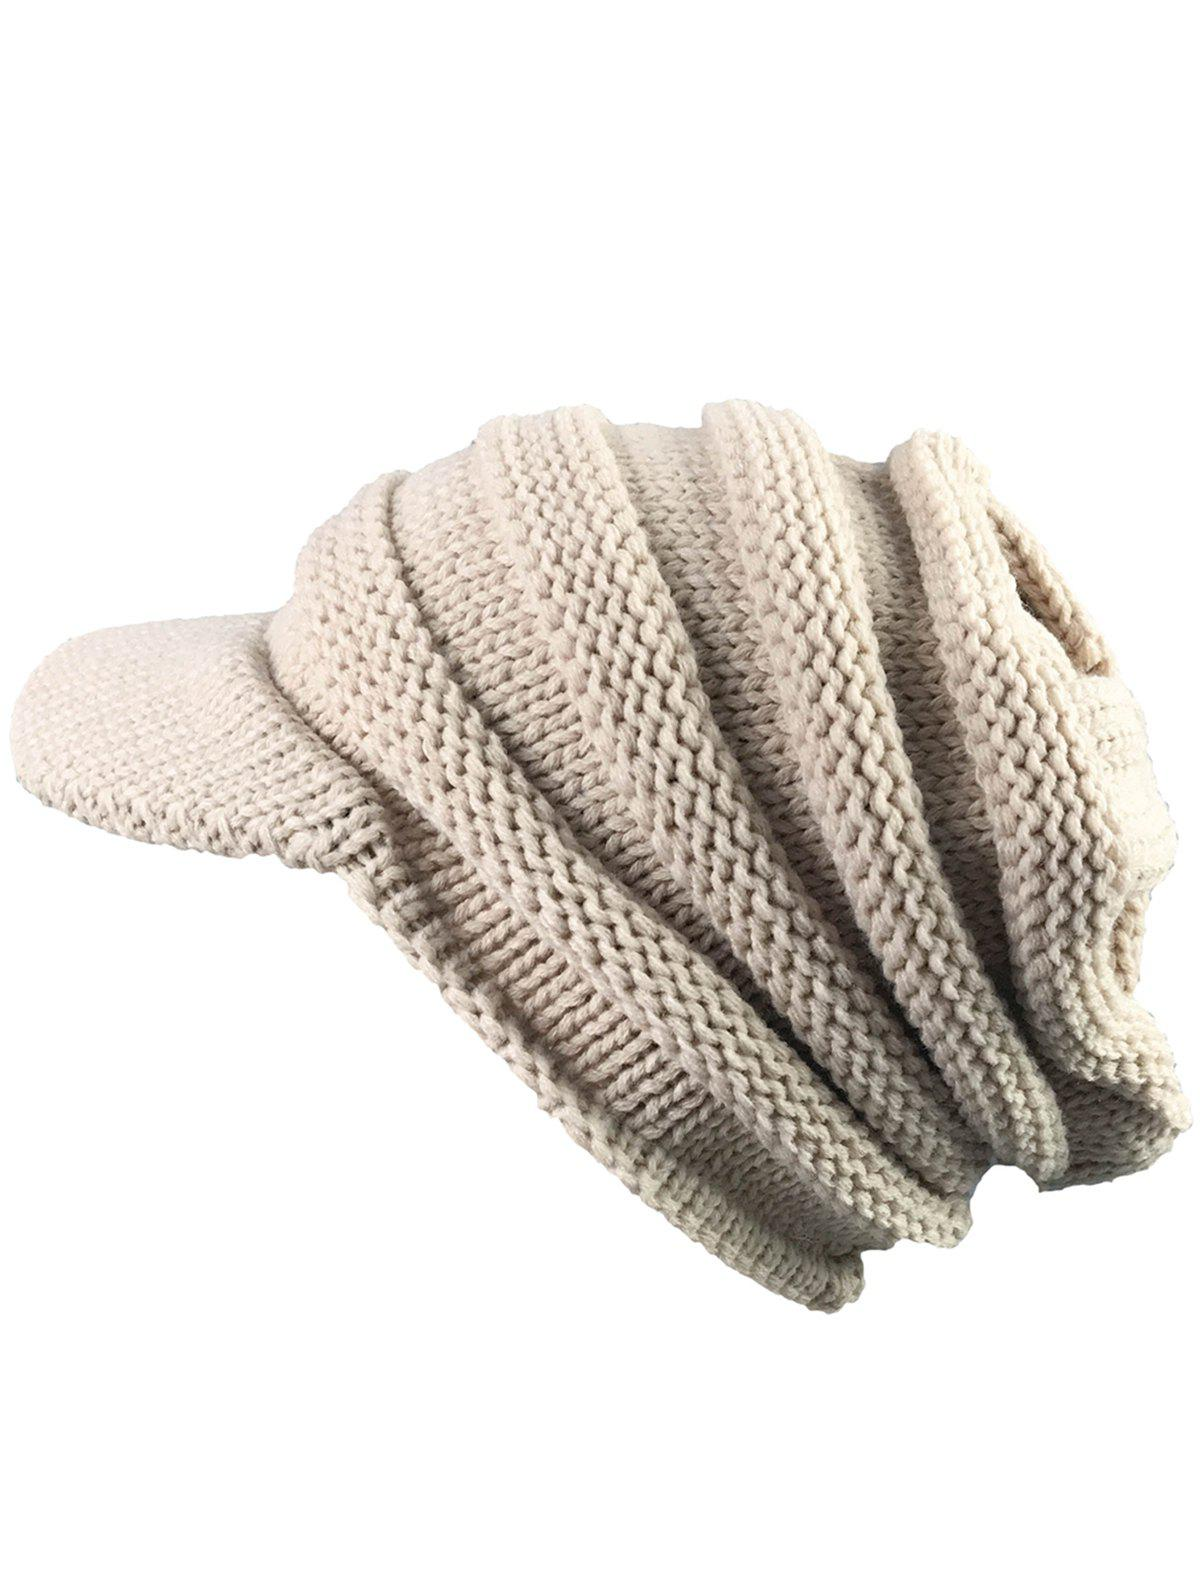 Outdoor Striped Pattern Ribbed Knit Beanie Hat hot winter beanie knit crochet ski hat plicate baggy oversized slouch unisex cap